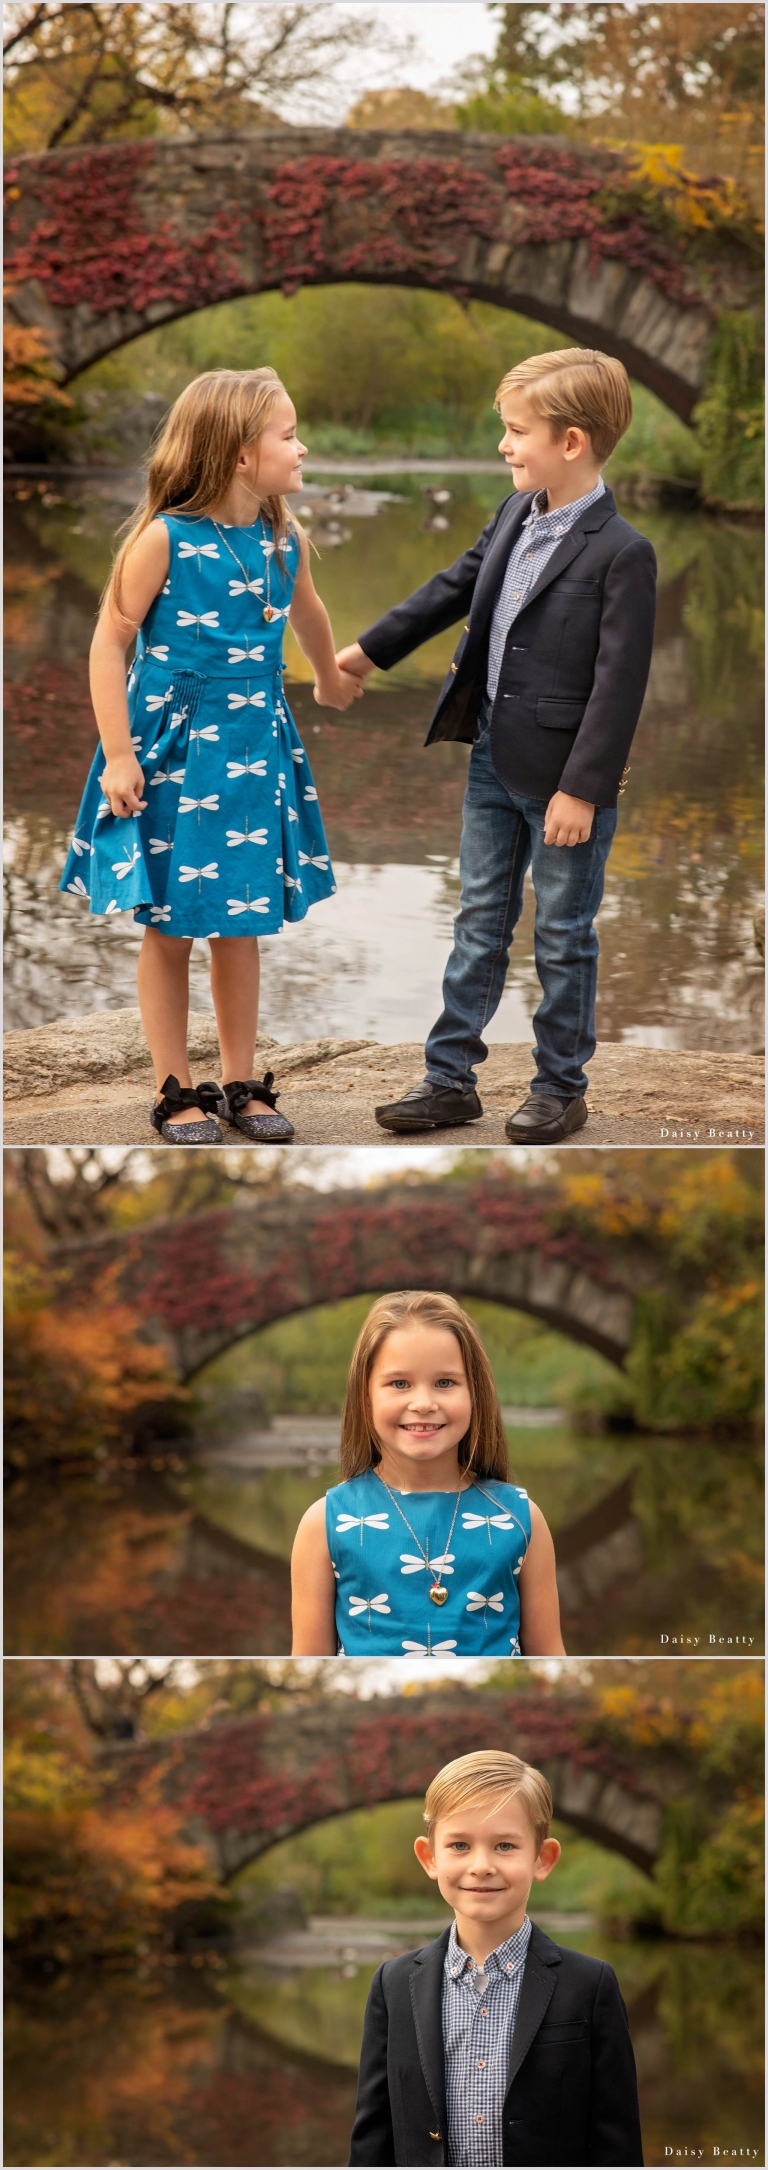 central park family photo locations